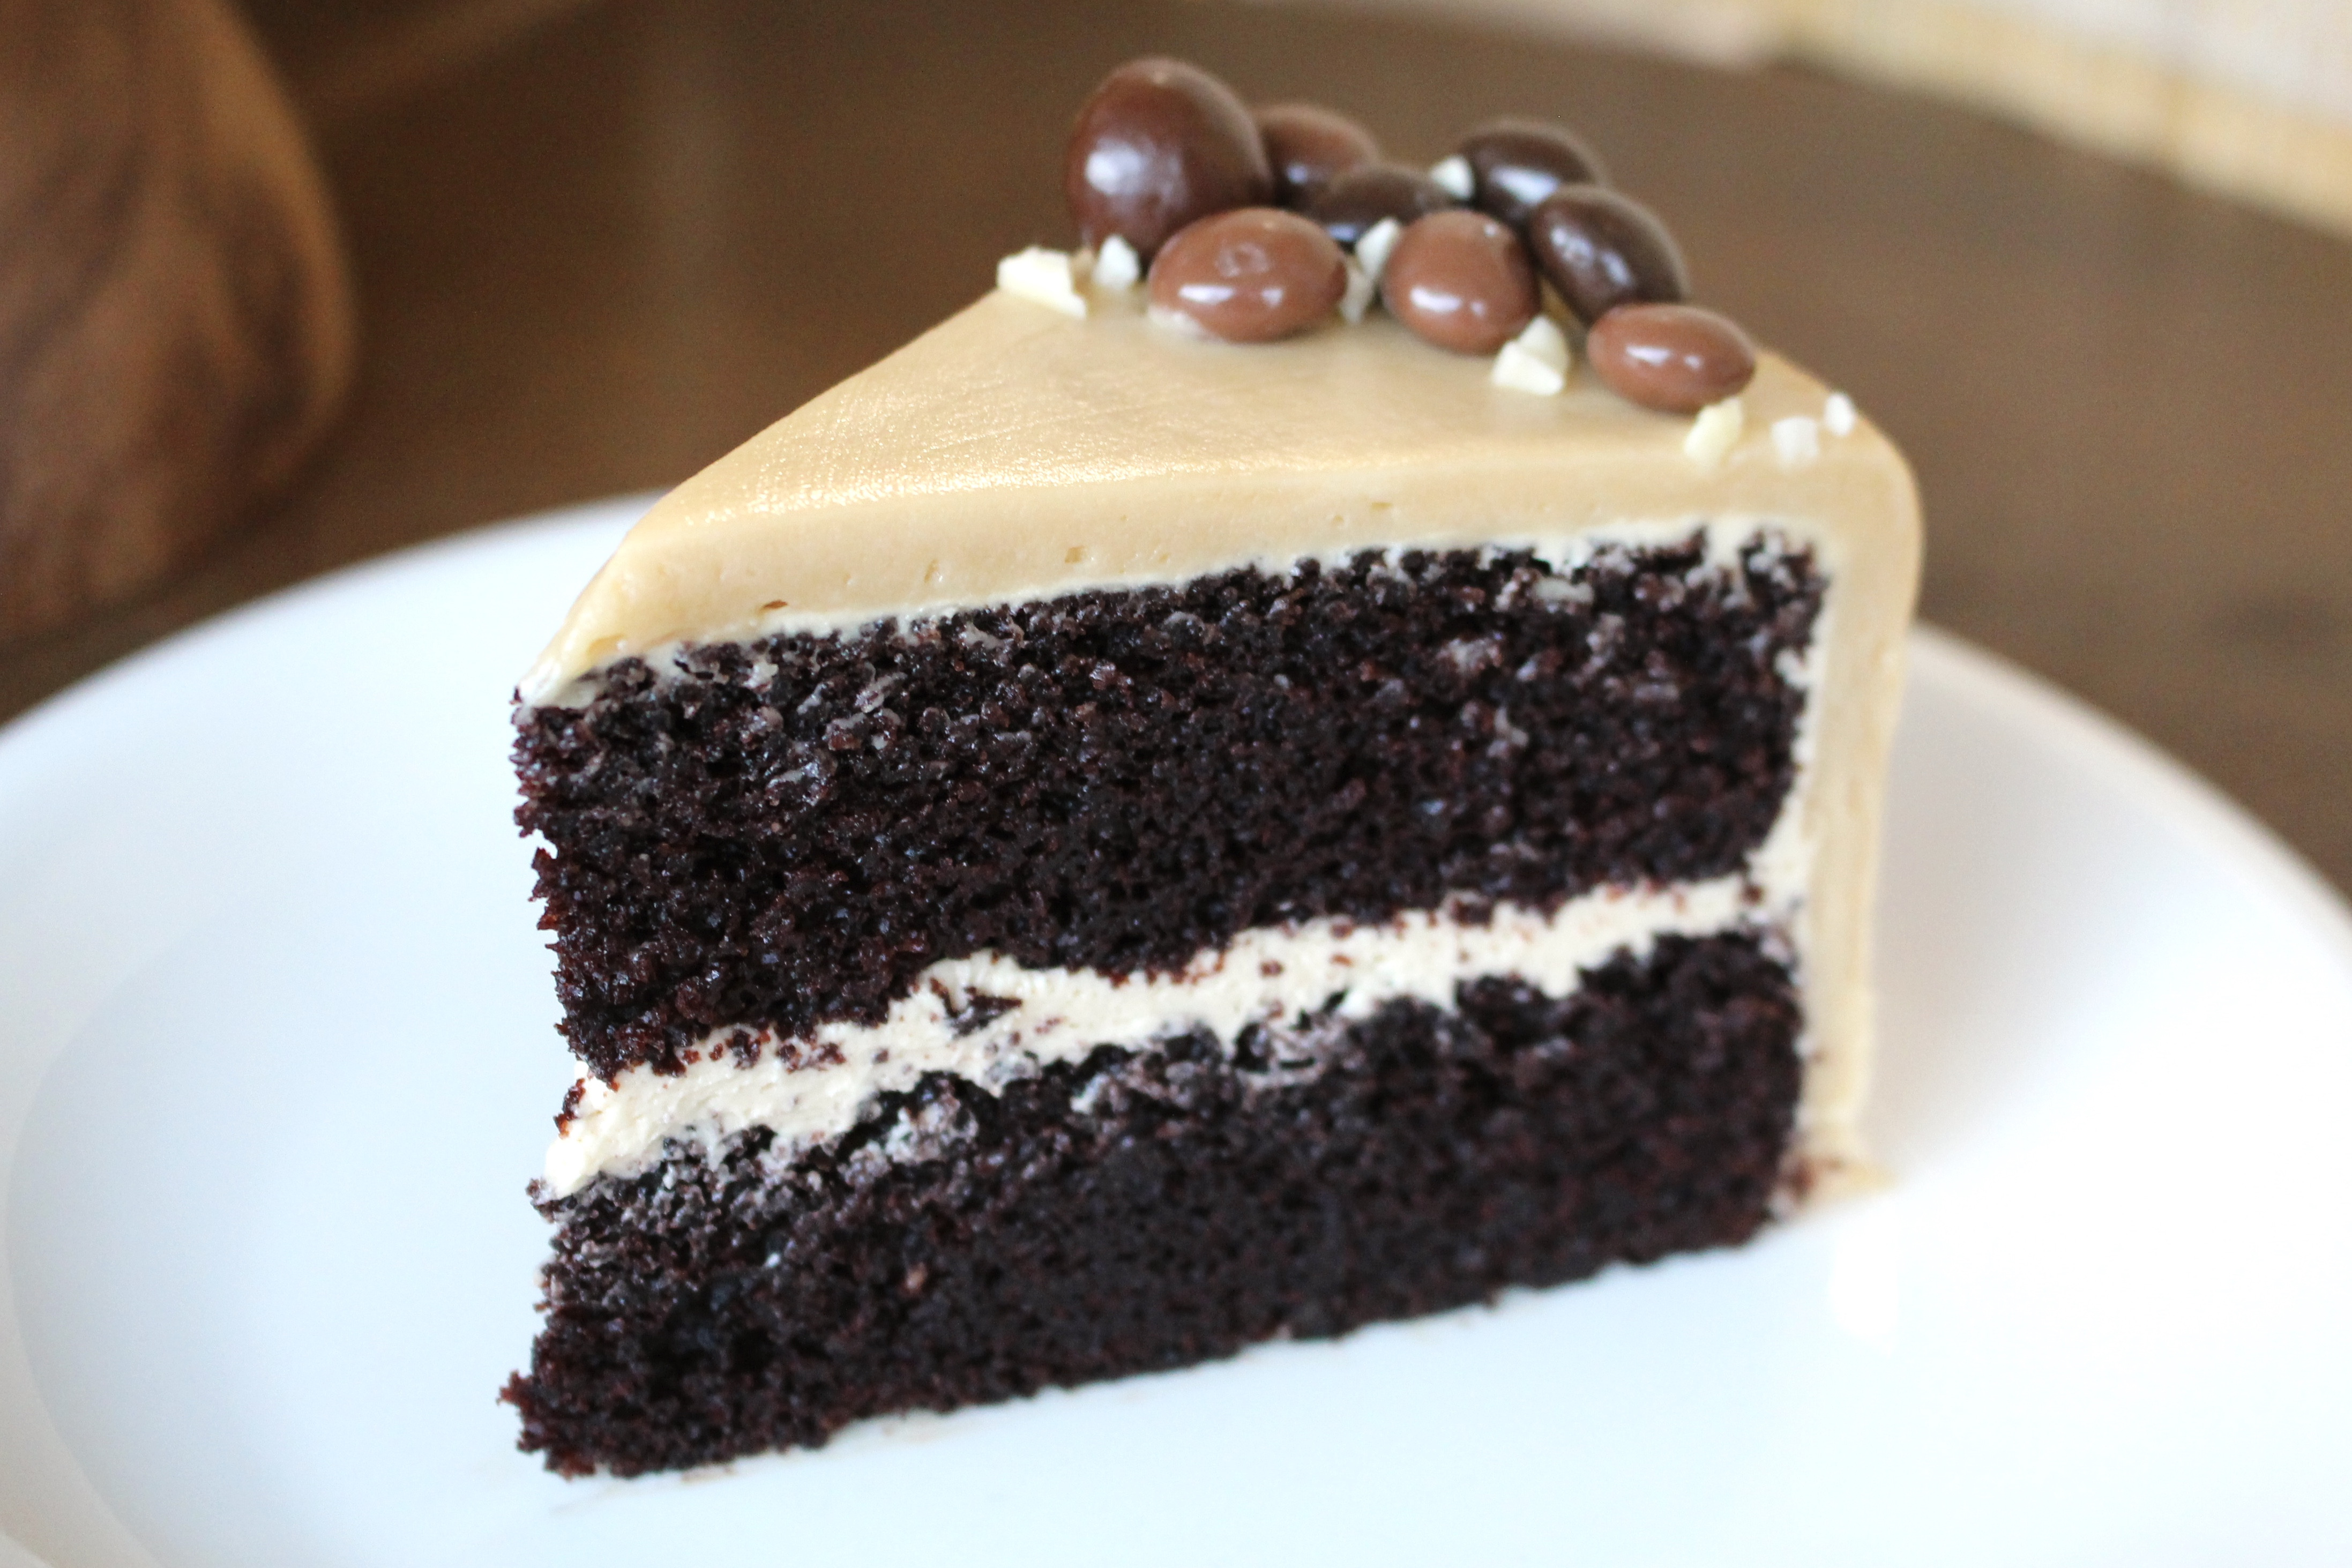 Chocolate Mocha Cake  Chocolate Mocha Cake Ai made it for youAi made it for you